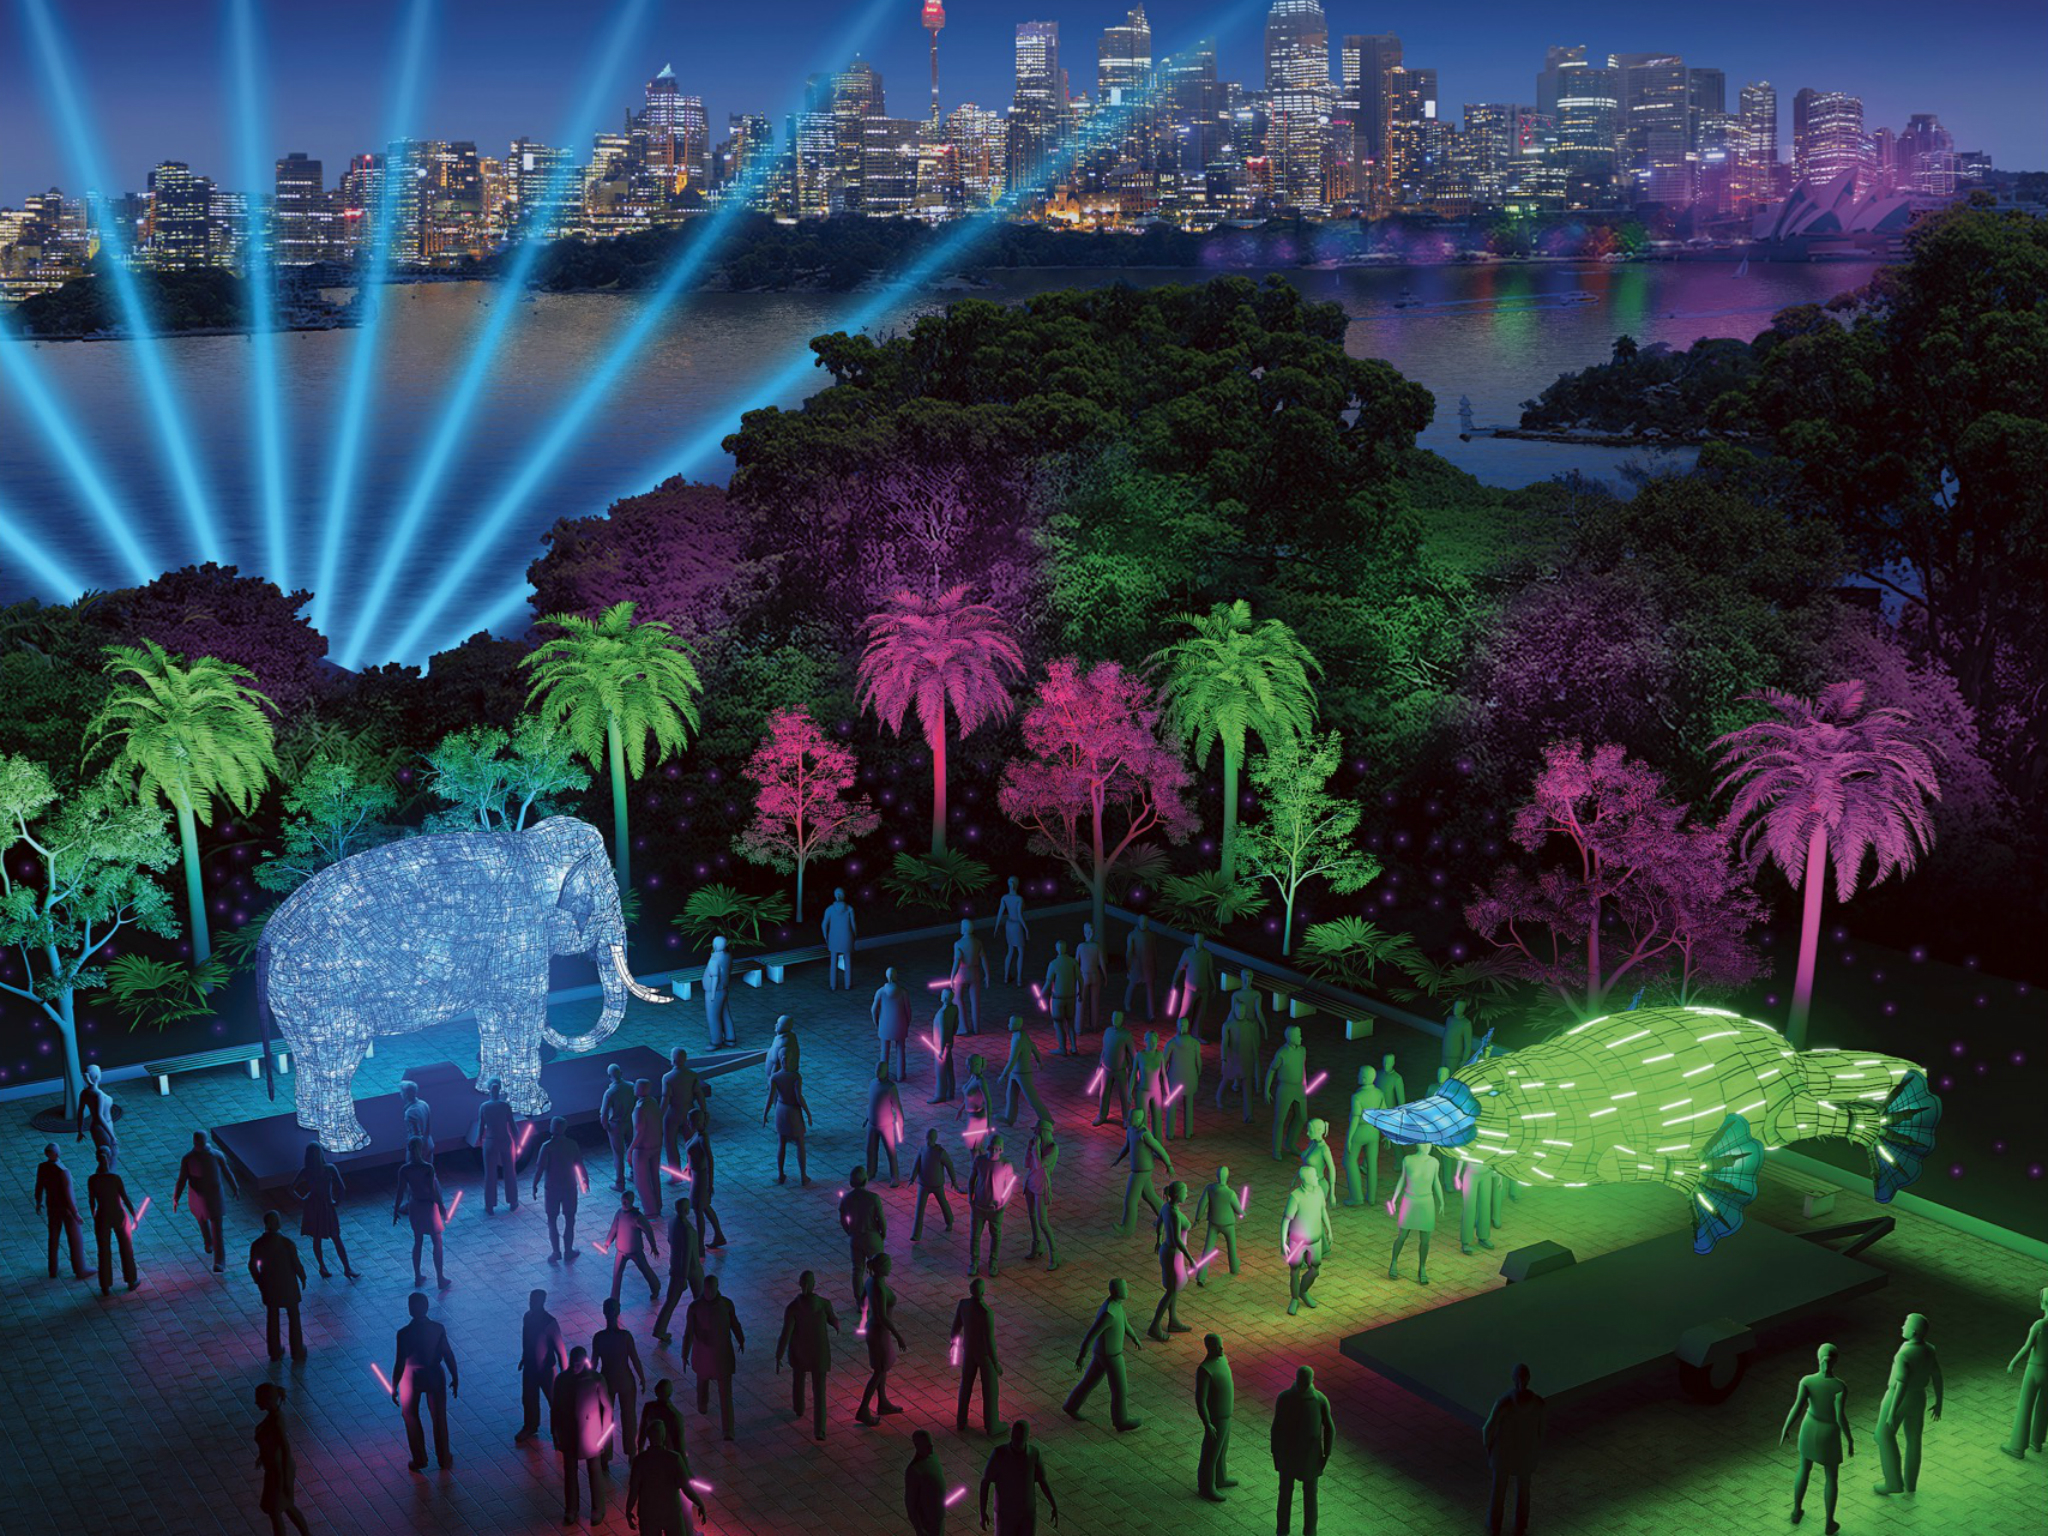 You can dine with the (illuminated) animals during Vivid at Taronga Zoo